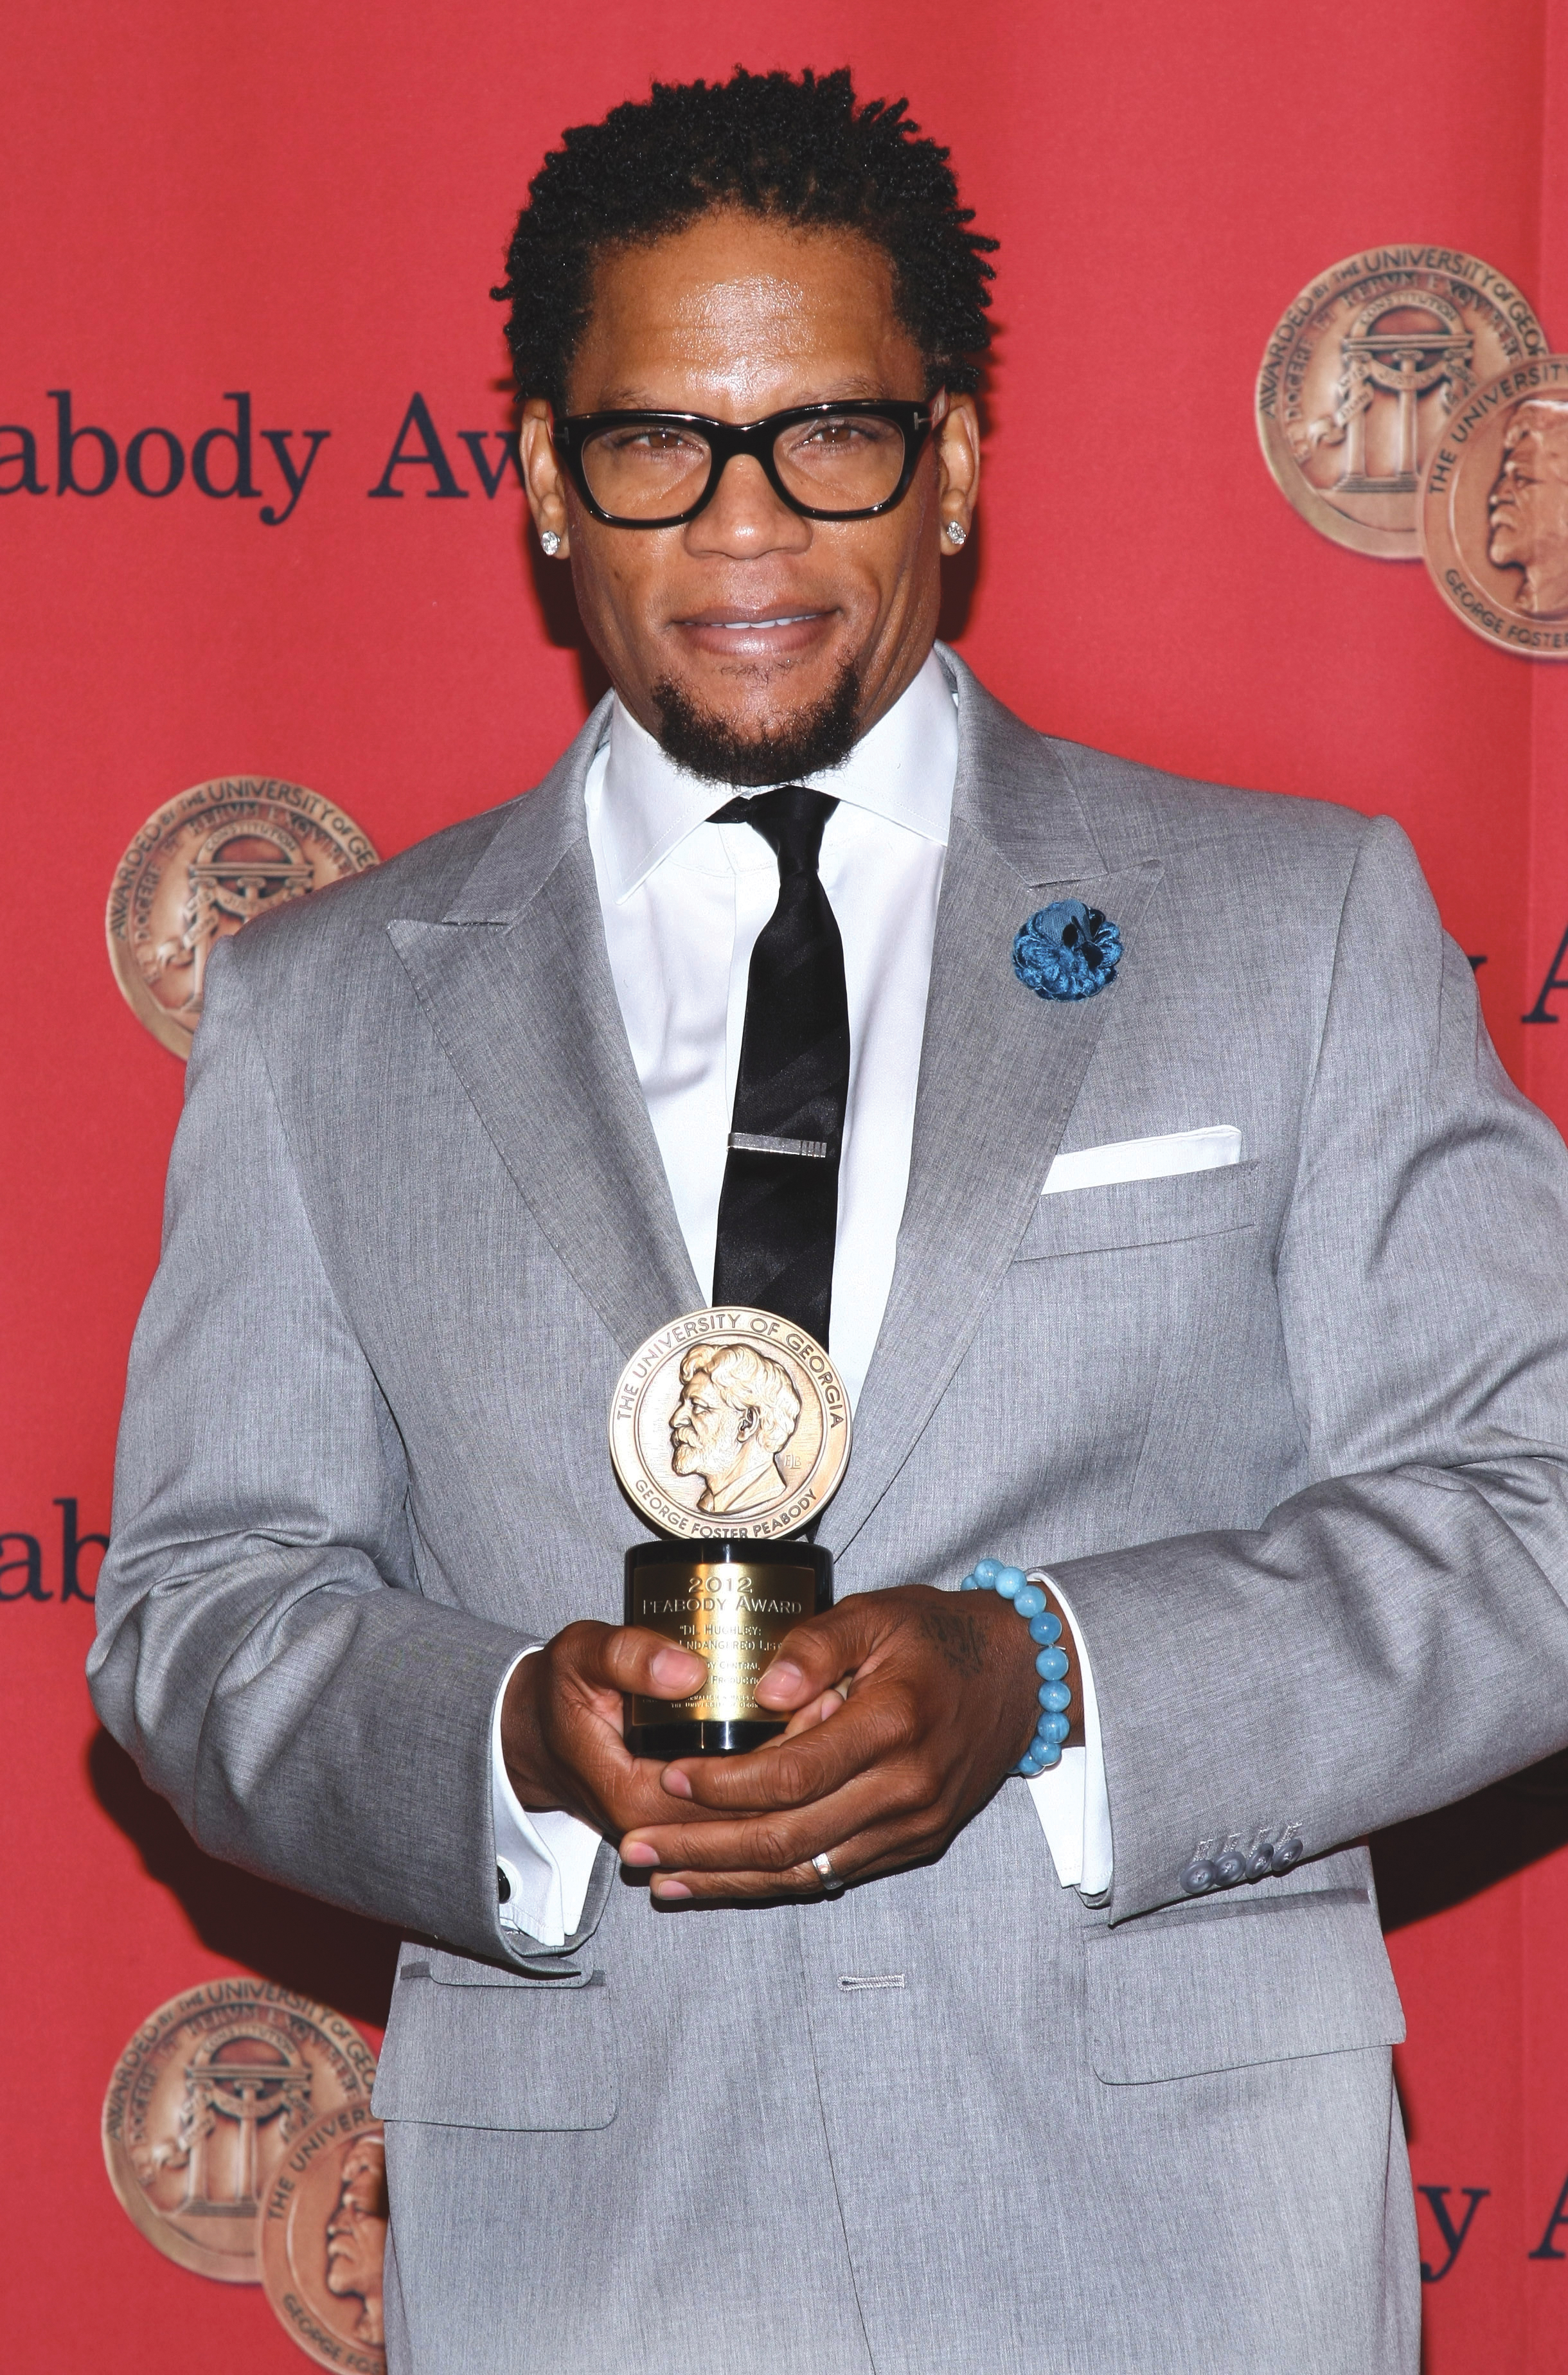 D.L. Hughley at the 72nd Annual Peabody Awards Luncheon for